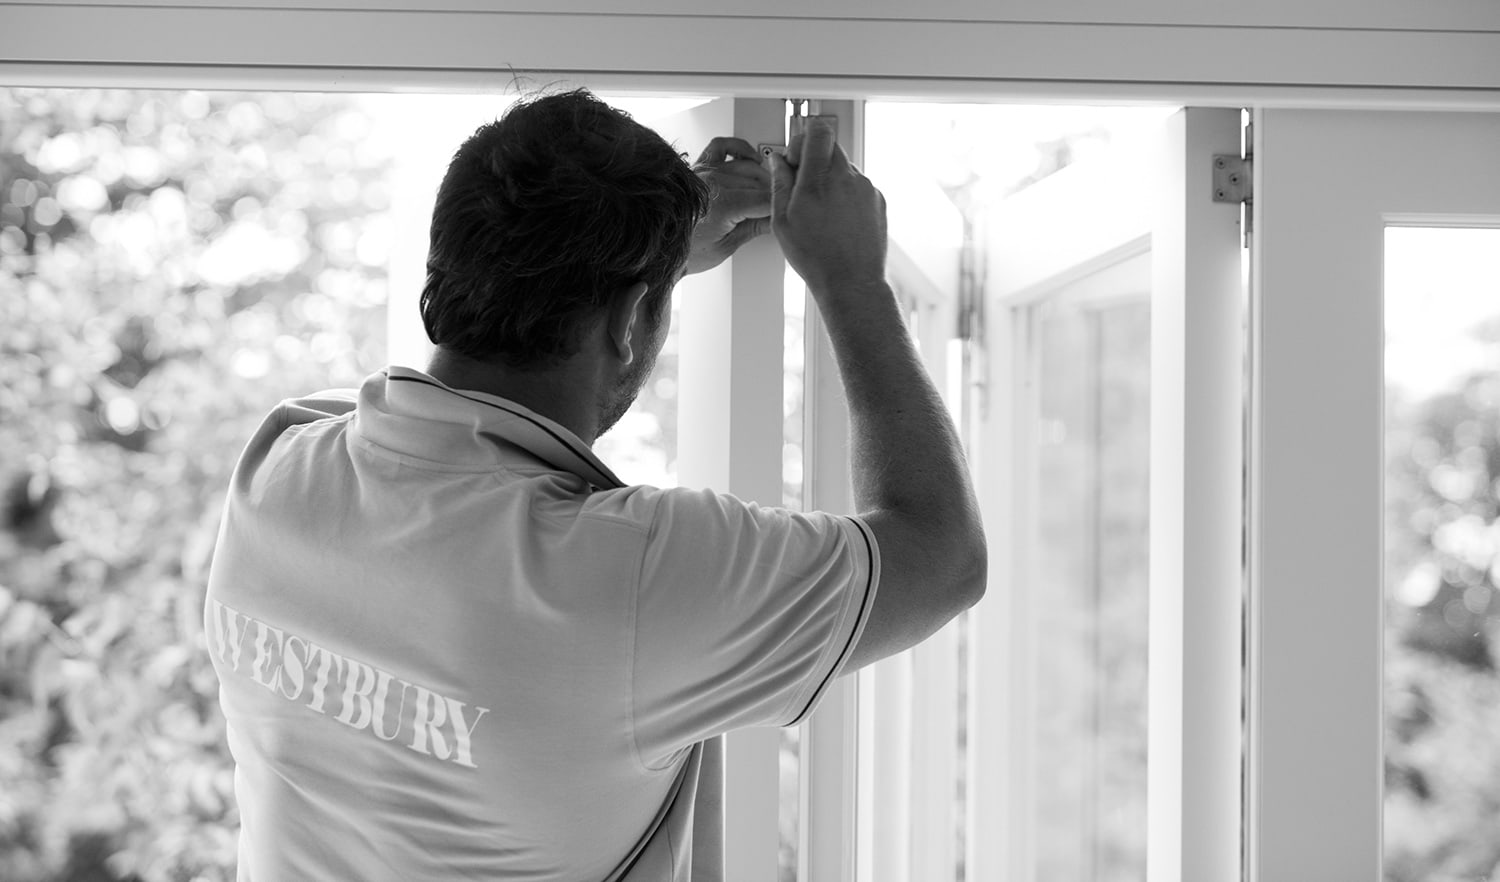 Westbury staff member securing a door hinge